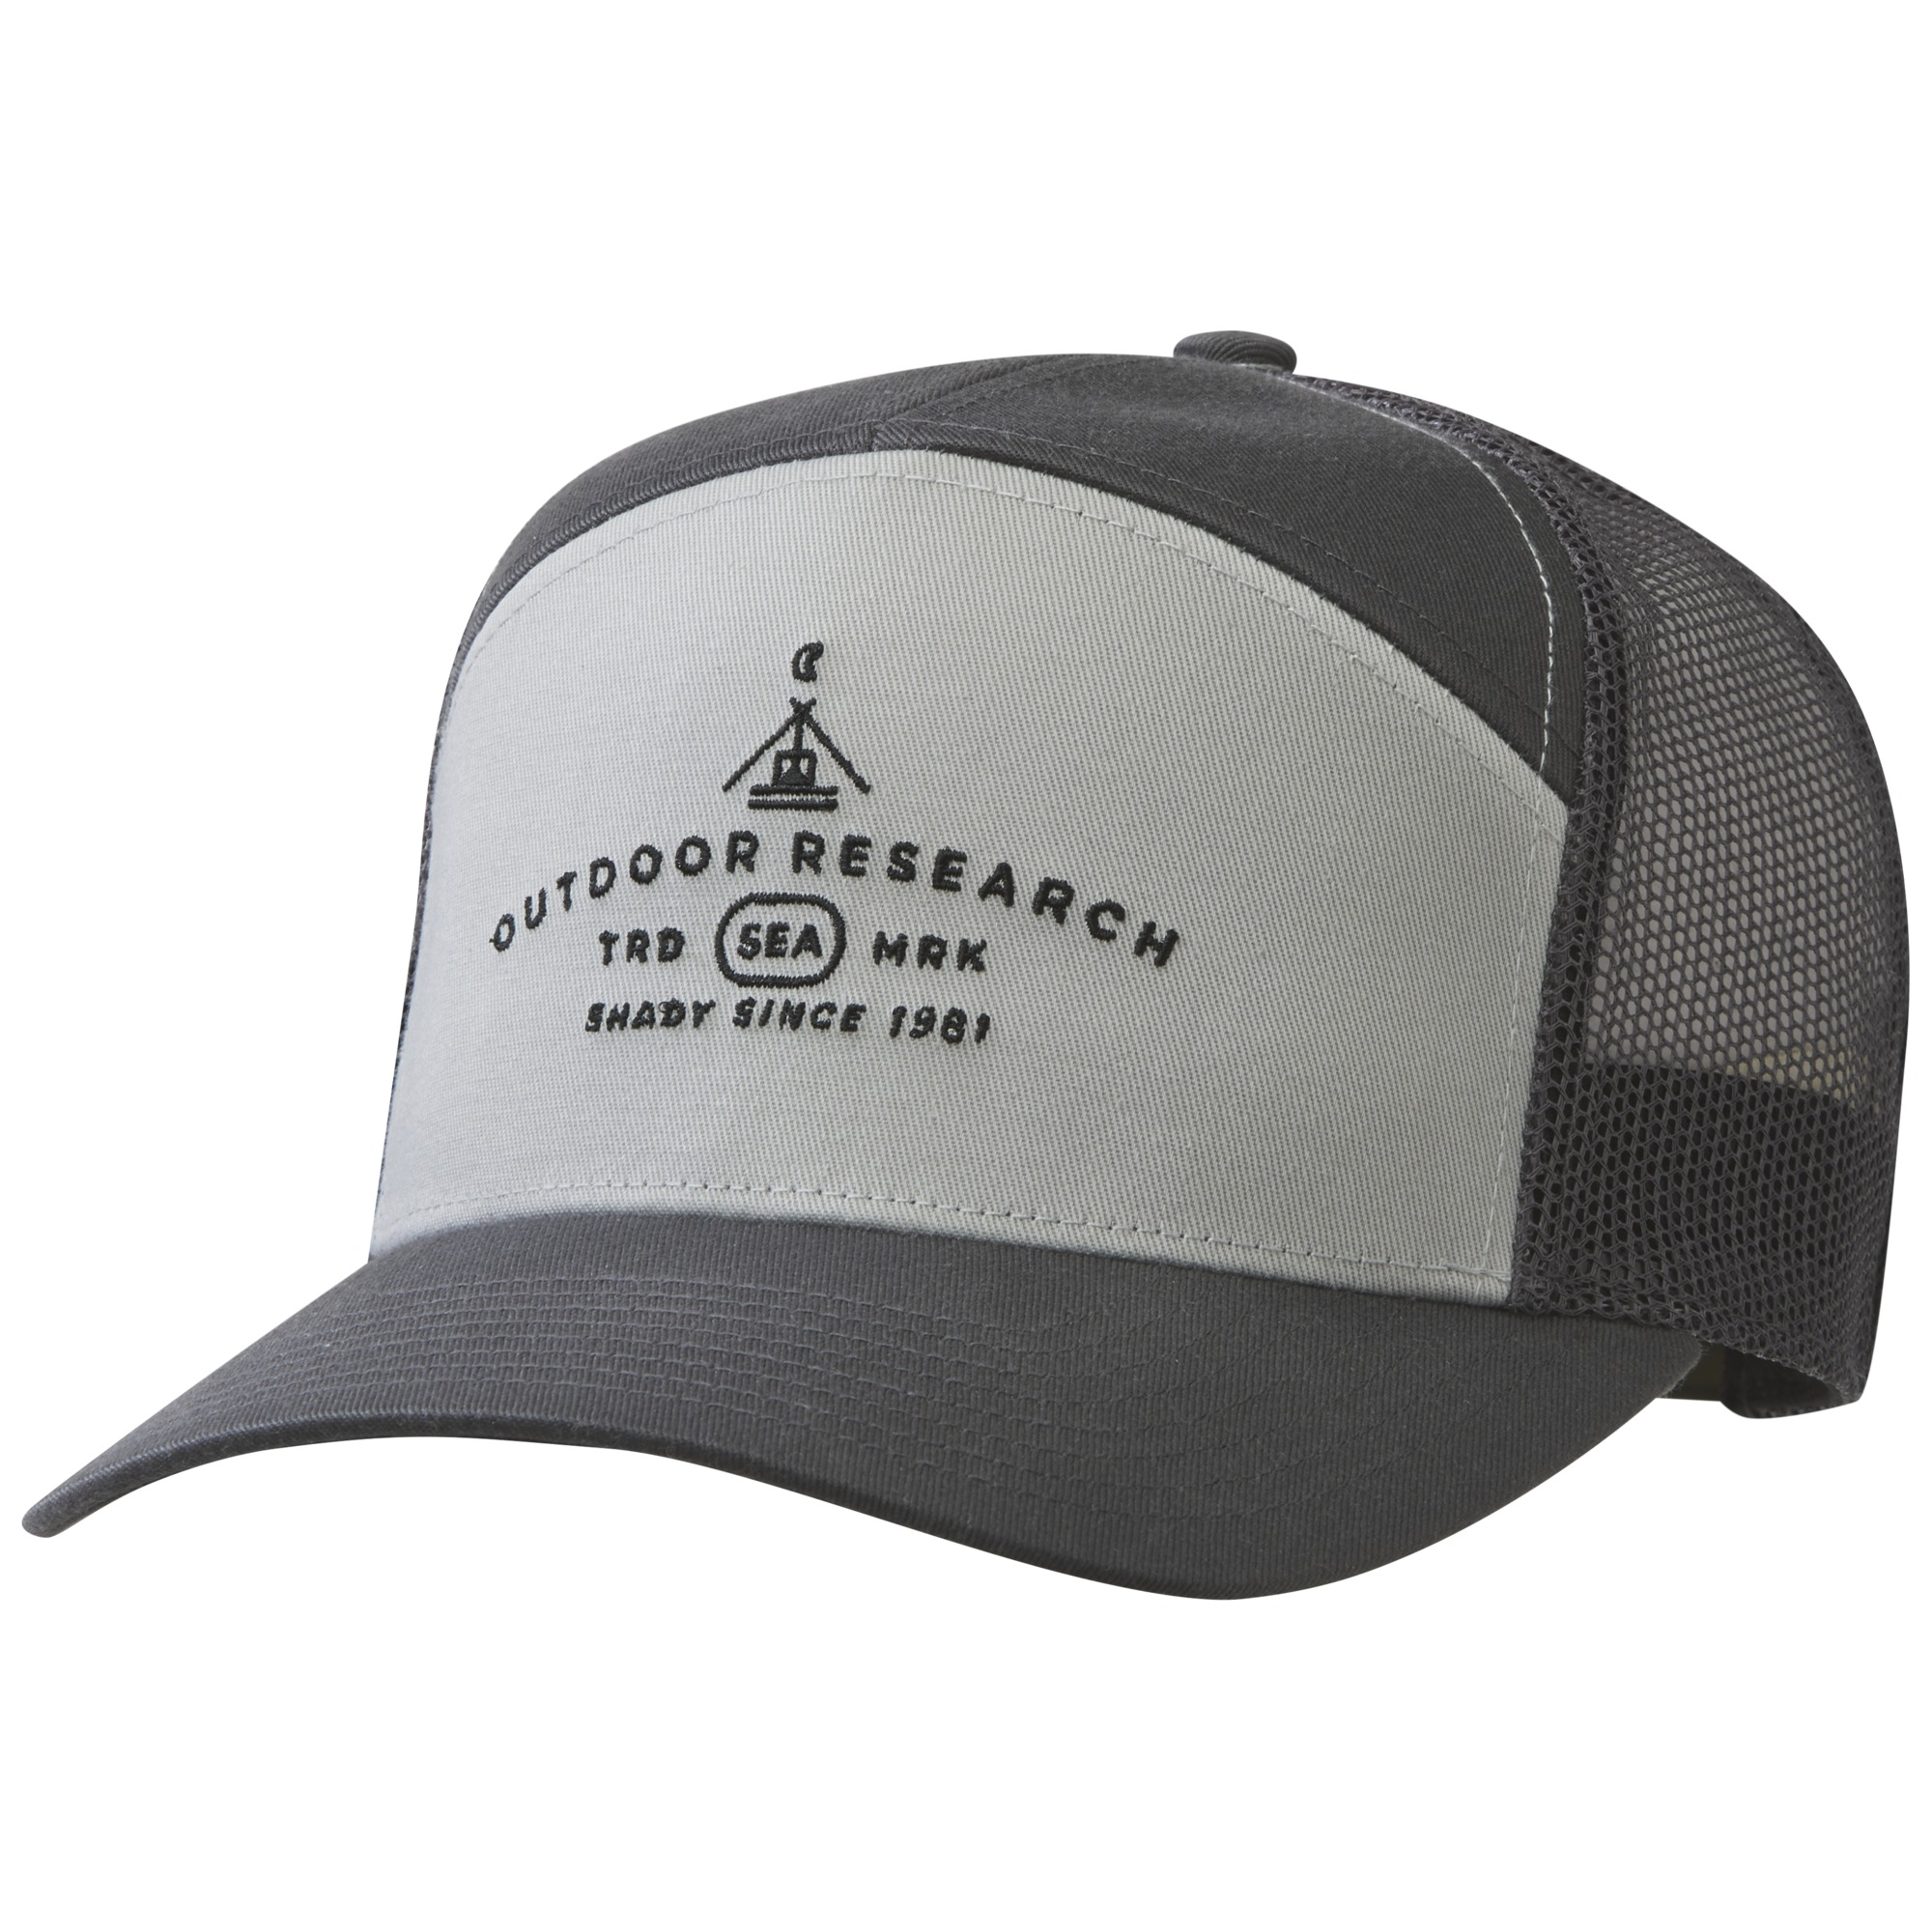 6a04392a Shady 7 Panel Trucker Hat - storm/alloy | Outdoor Research